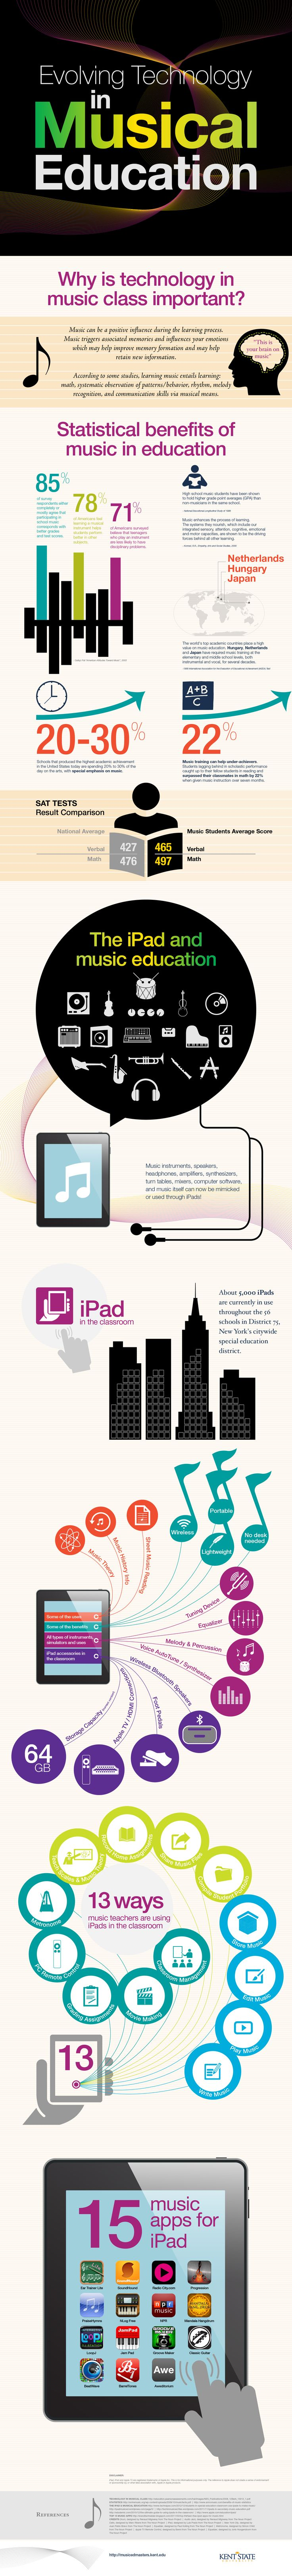 Infographic:+Evolving+Technology+In+Musical+Education